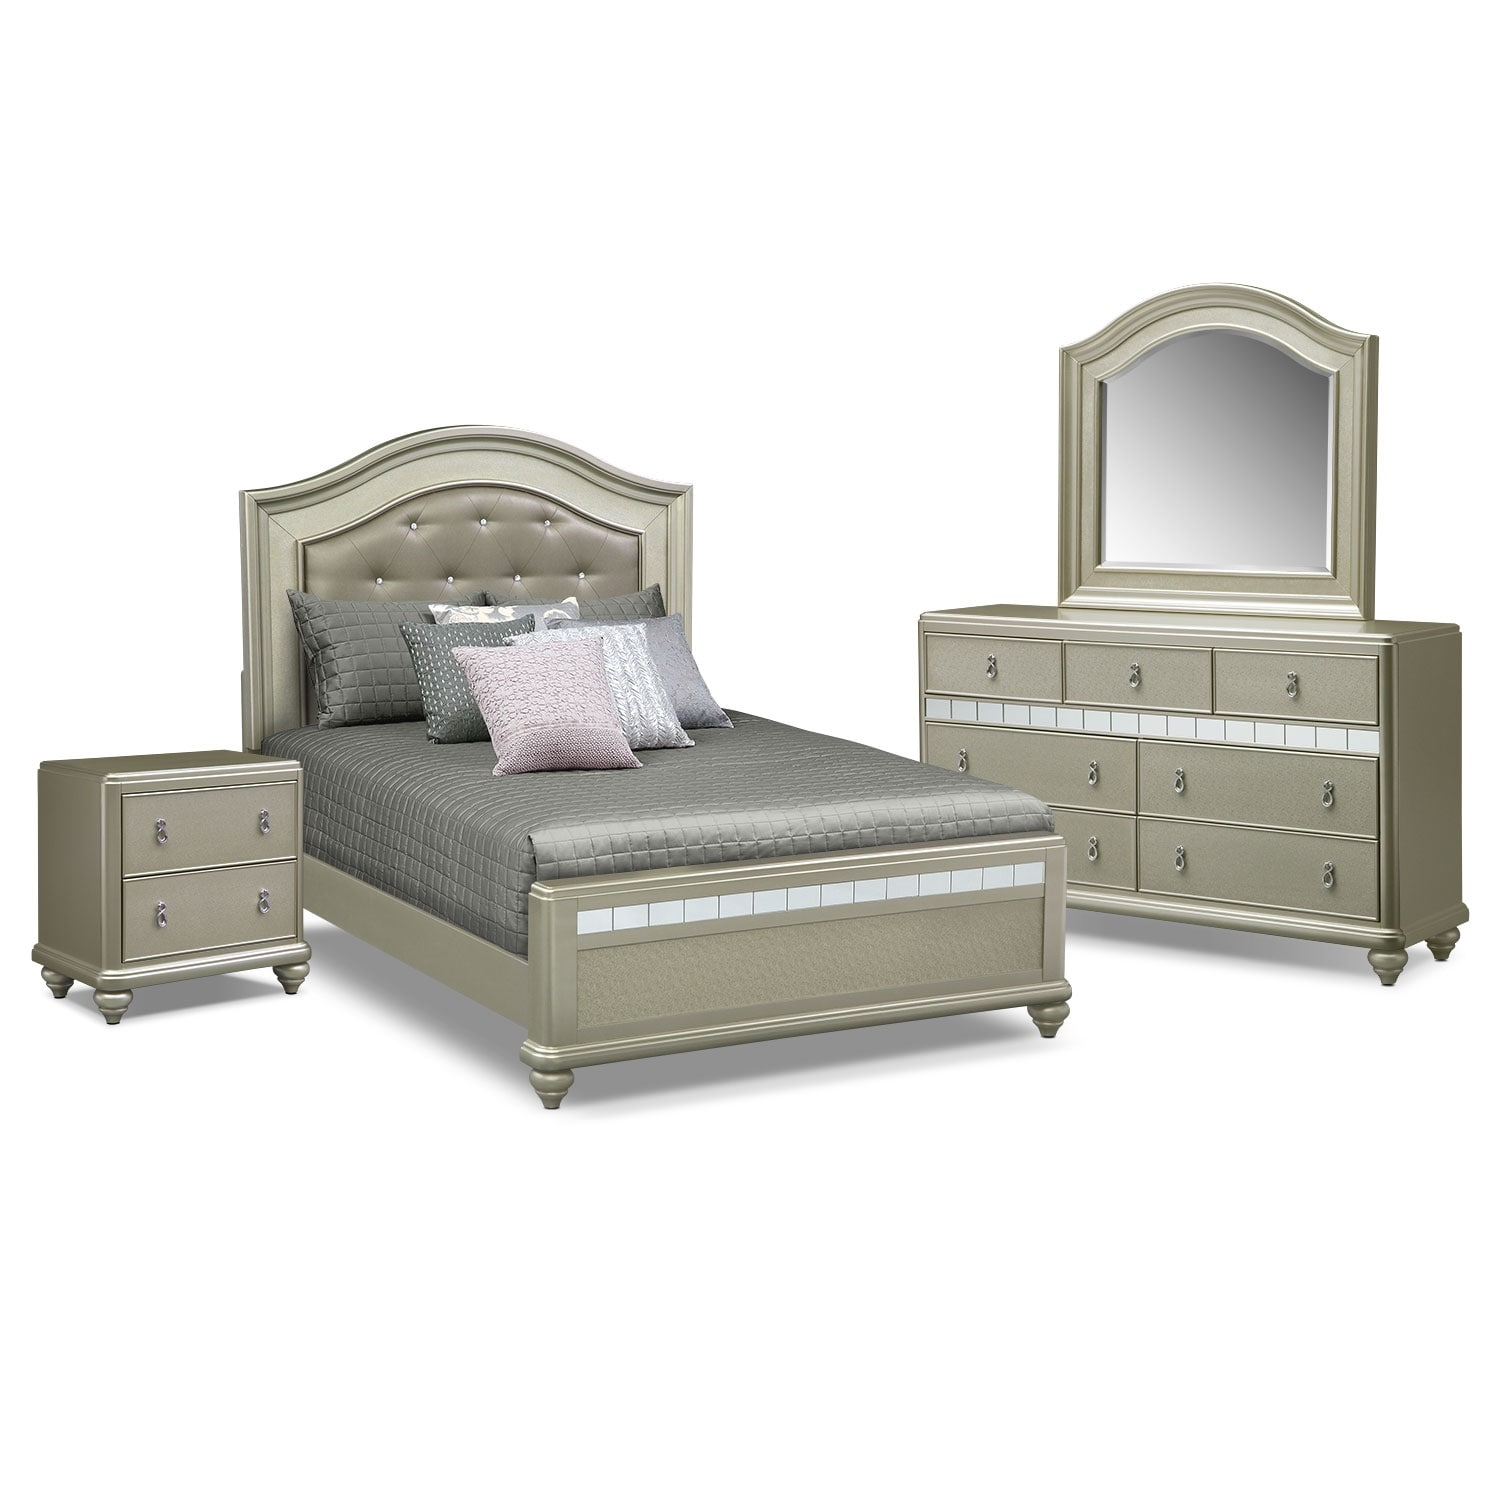 Bedroom Furniture - Serena Queen 6-Piece Bedroom Set - Platinum